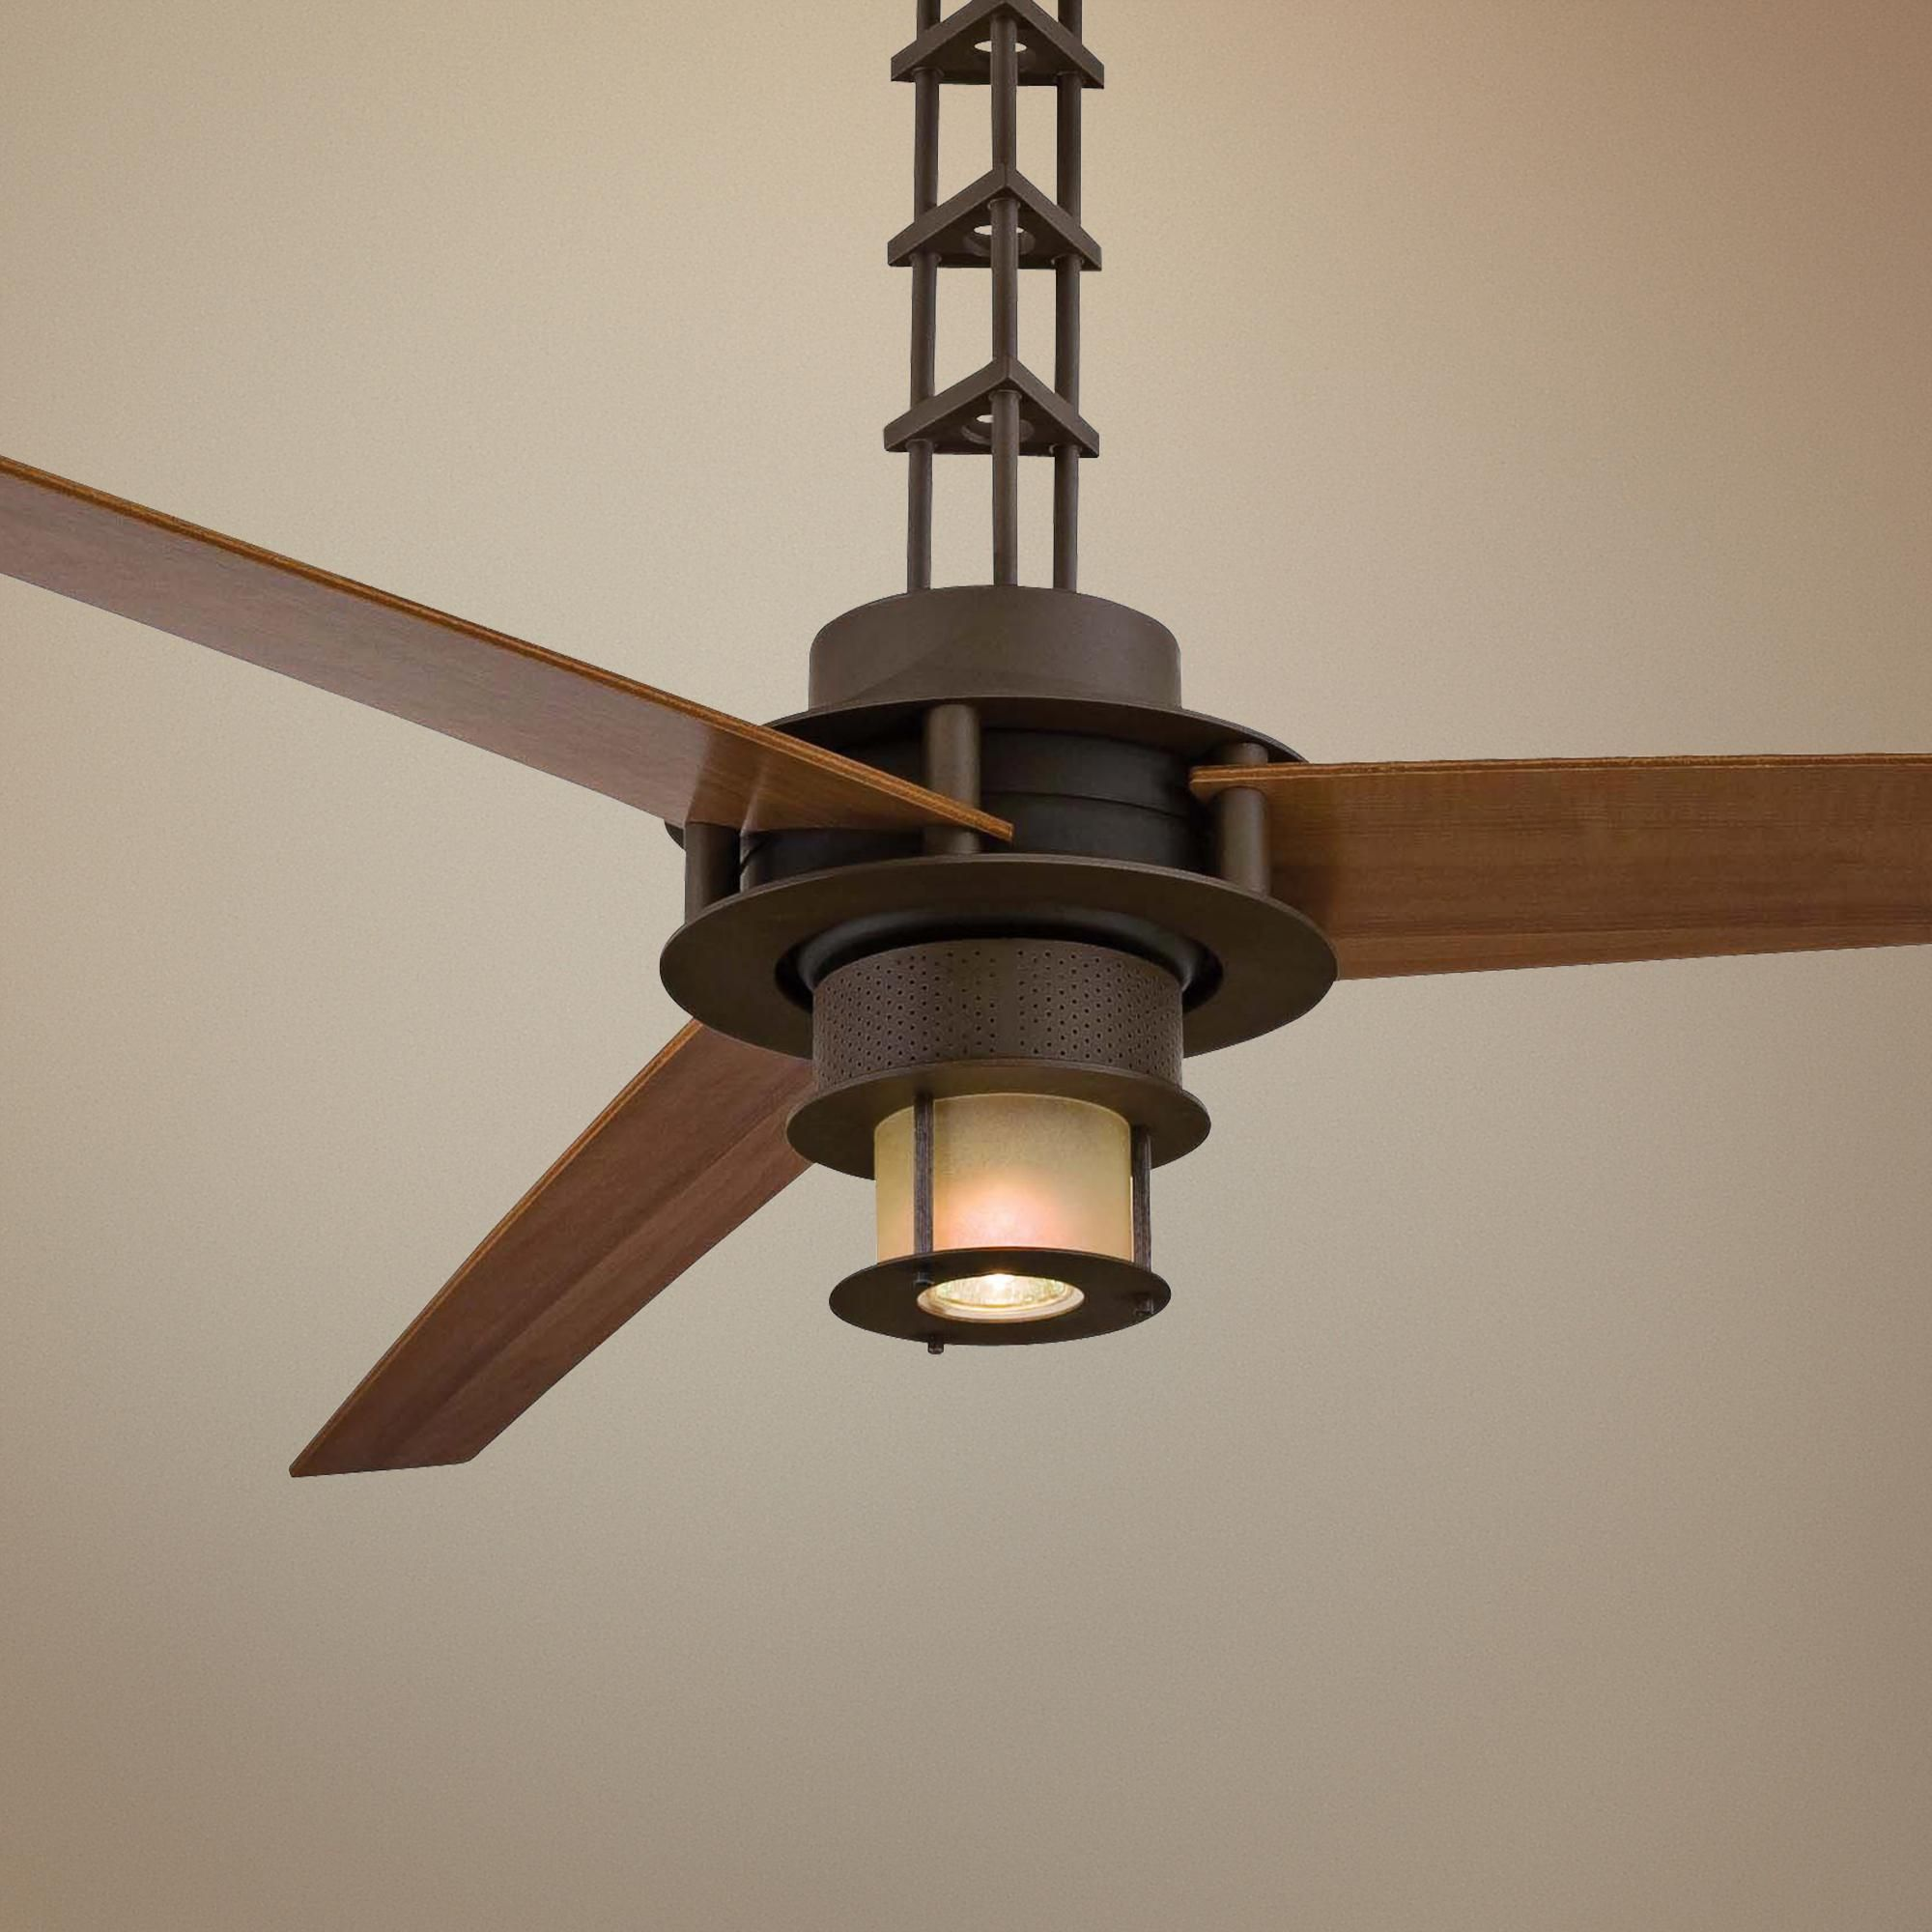 44+ Arts and crafts ceiling fan light kit information